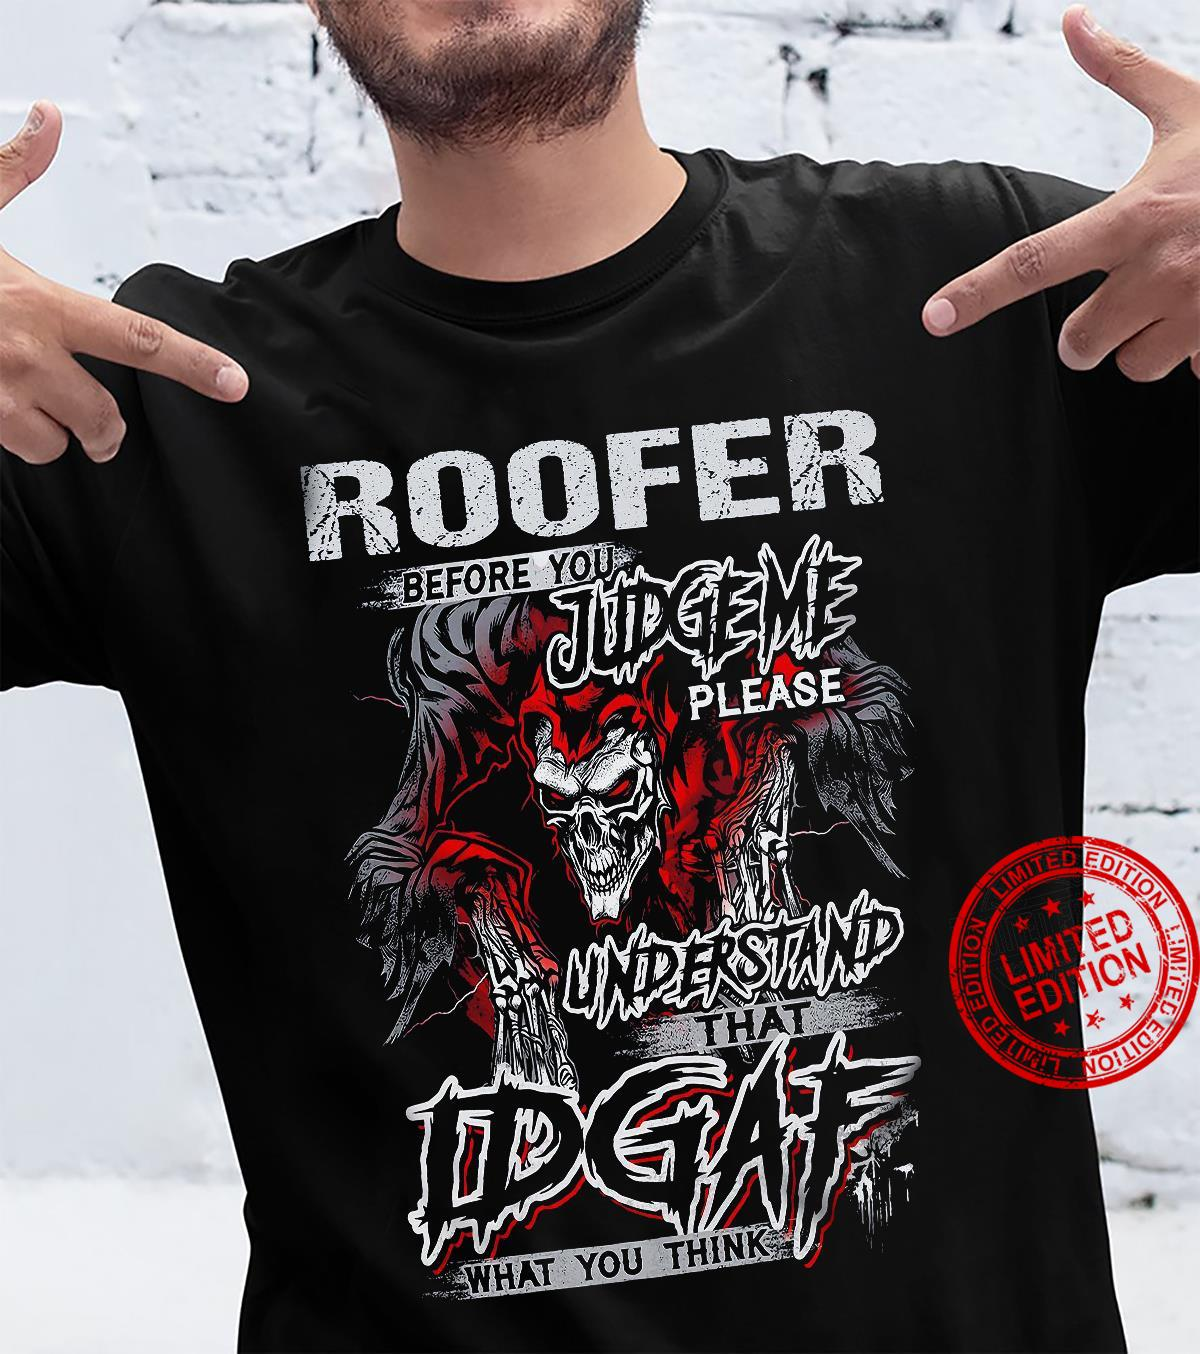 Roofer Before You Judge Me Please Understand That Idgaf What You Think Shirt